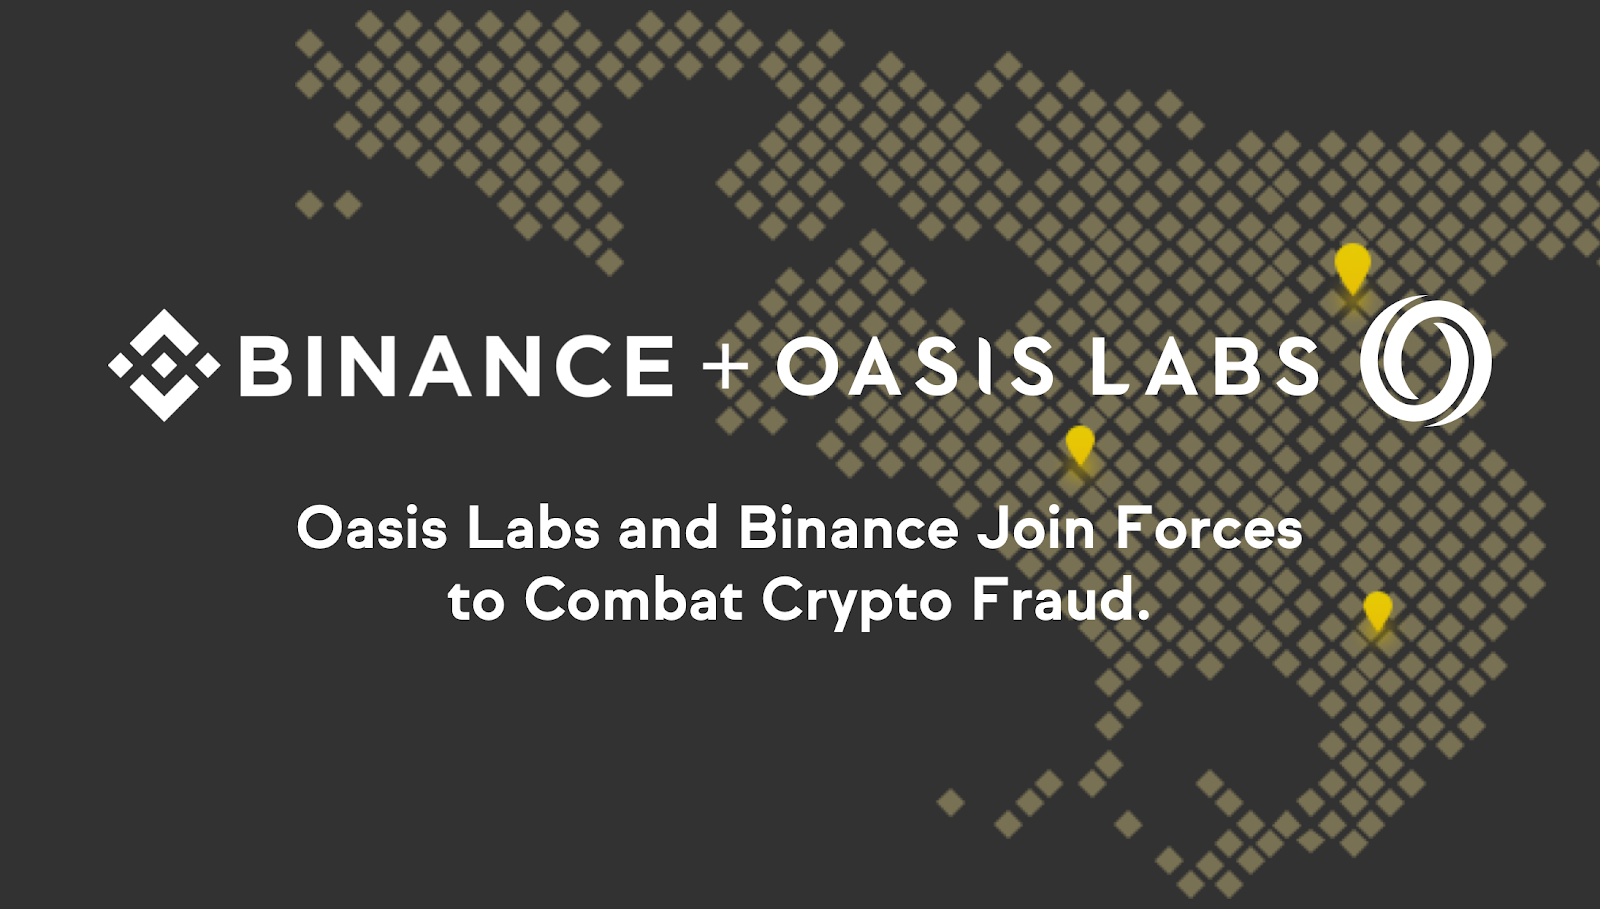 Oasis Labs Joins Forces with Binance to Launch CryptoSafe Alliance and Decentralized Platform for Combatting Crypto Fraud